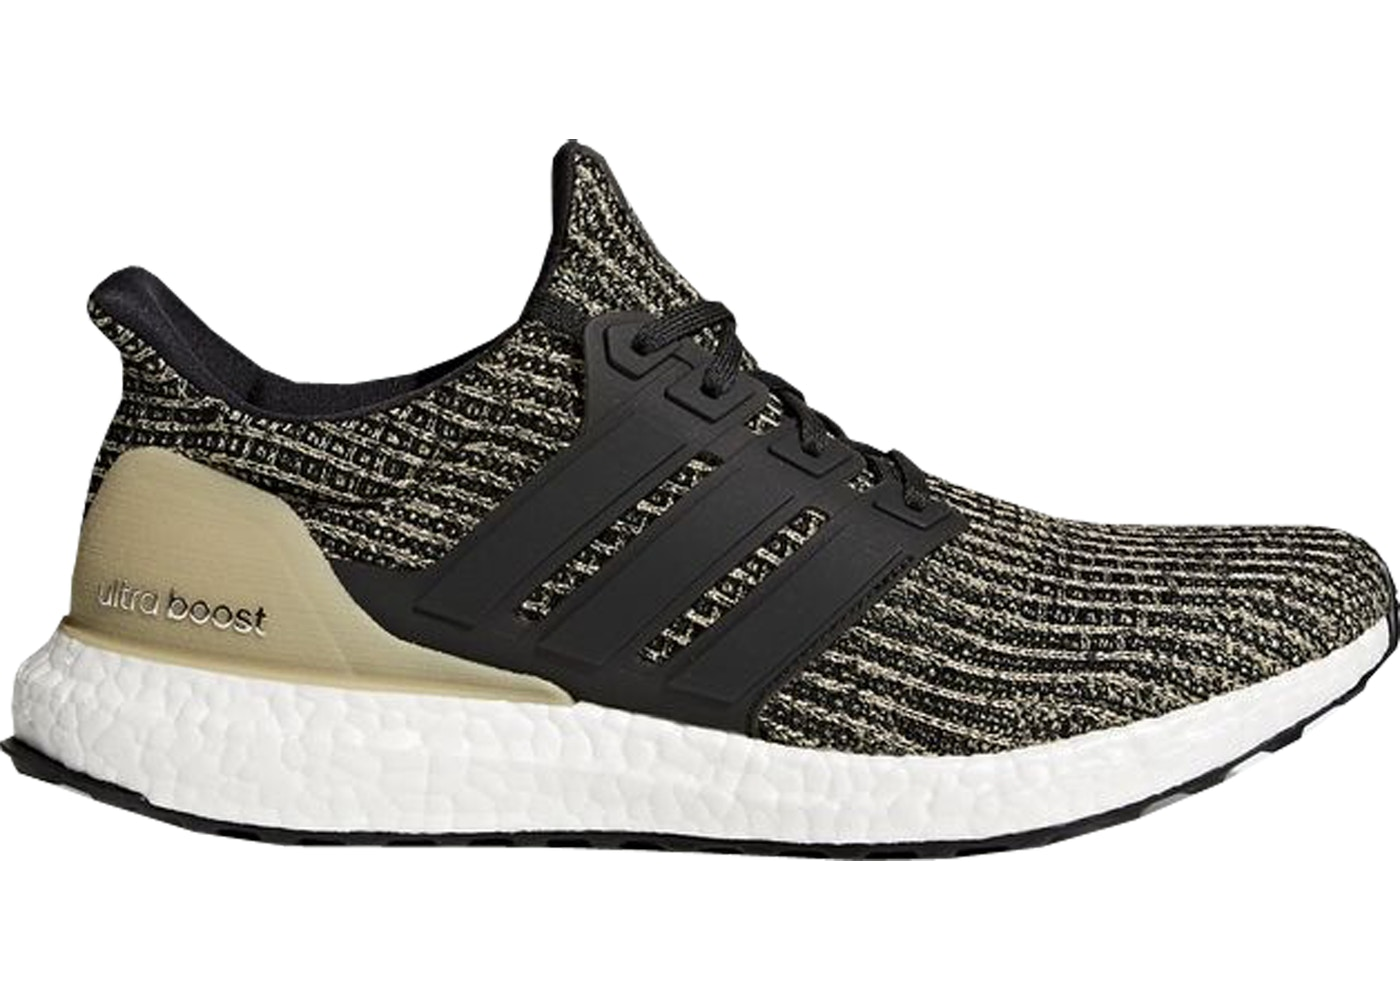 Buy Adidas Ultra Boost Shoes Deadstock Sneakers